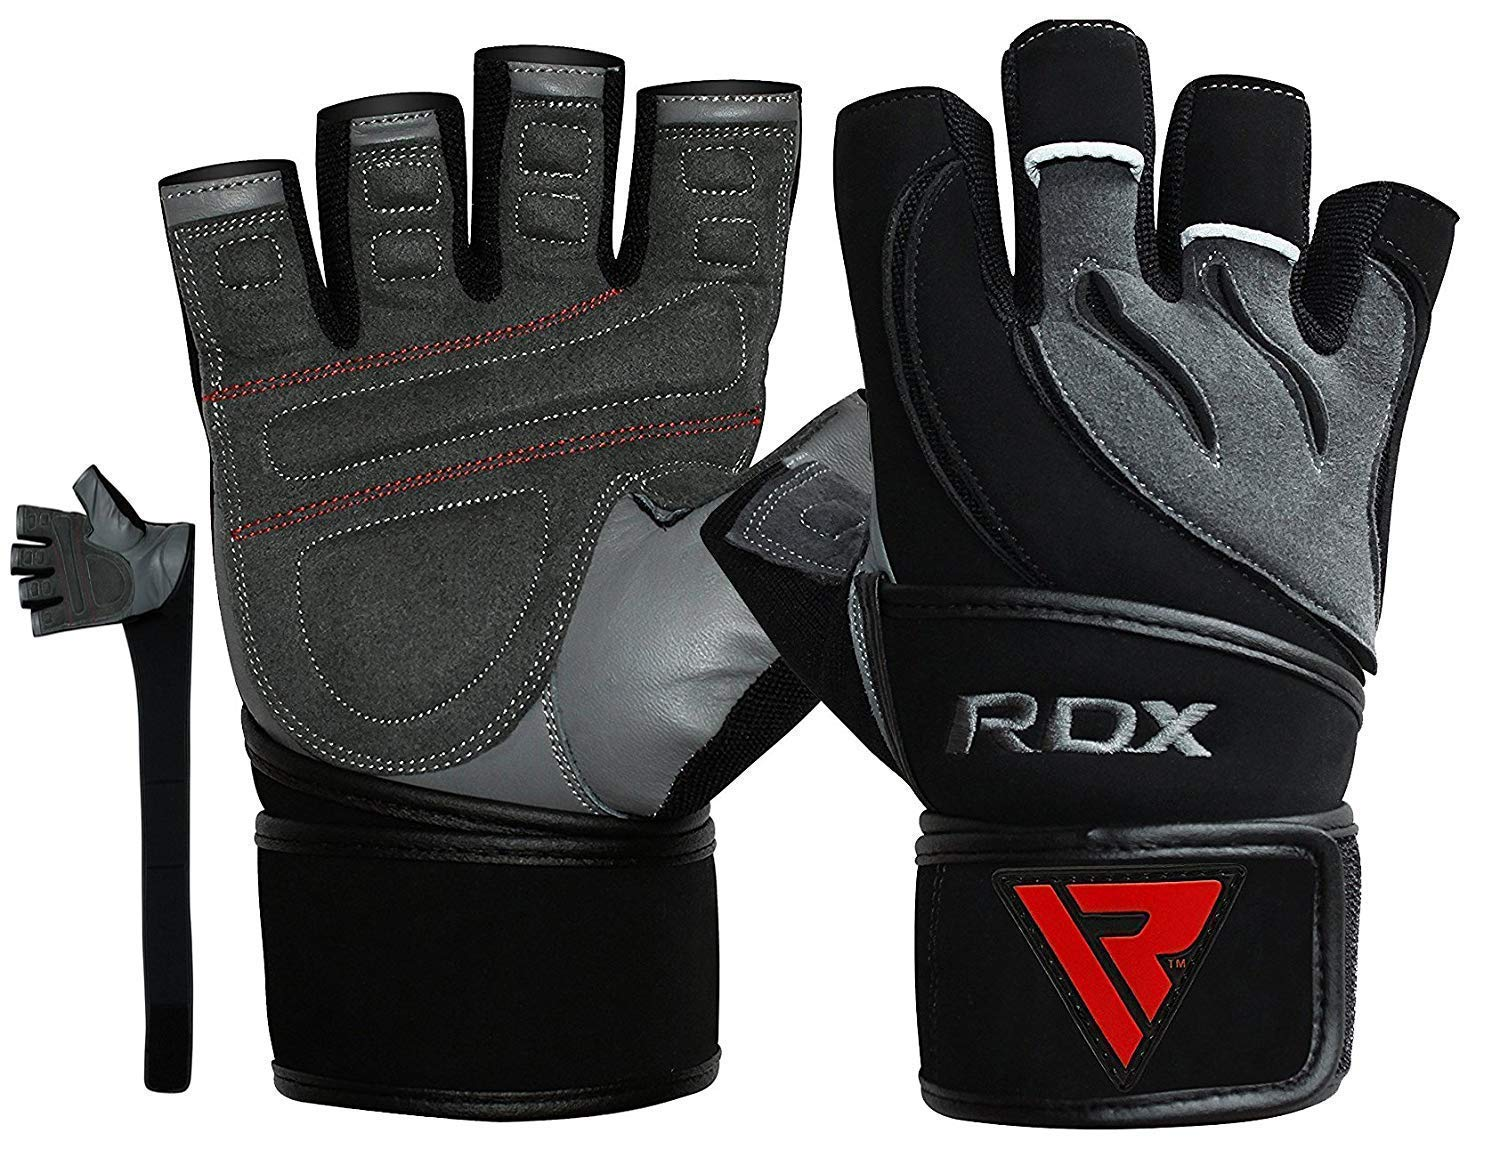 RDX Weight Lifting Gloves for Gym Workout